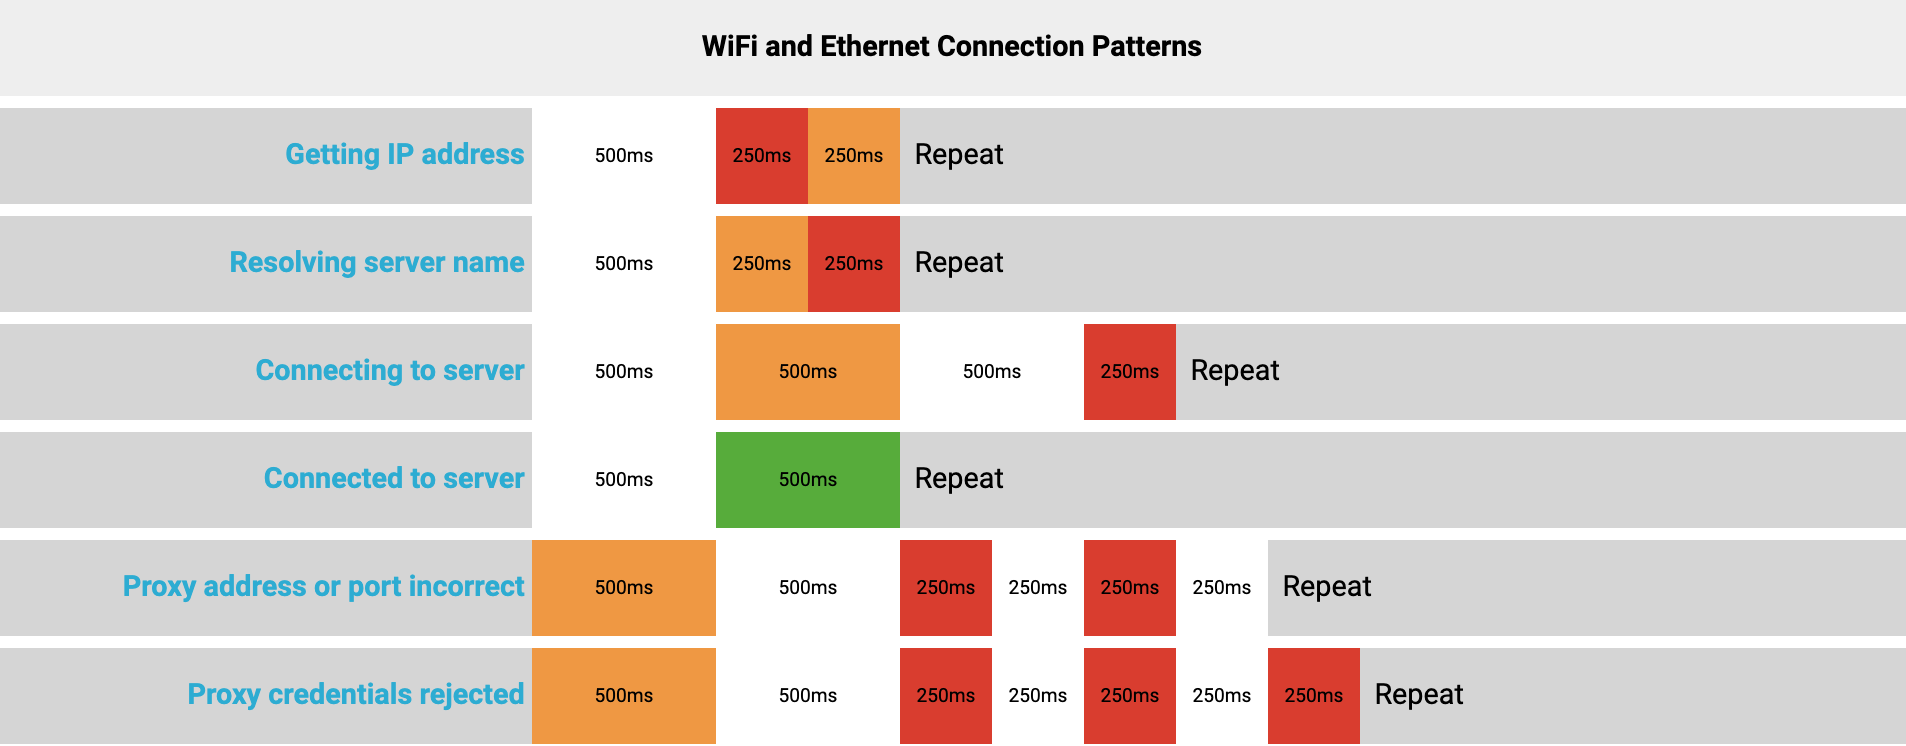 wifi_ethernet_patterns.png